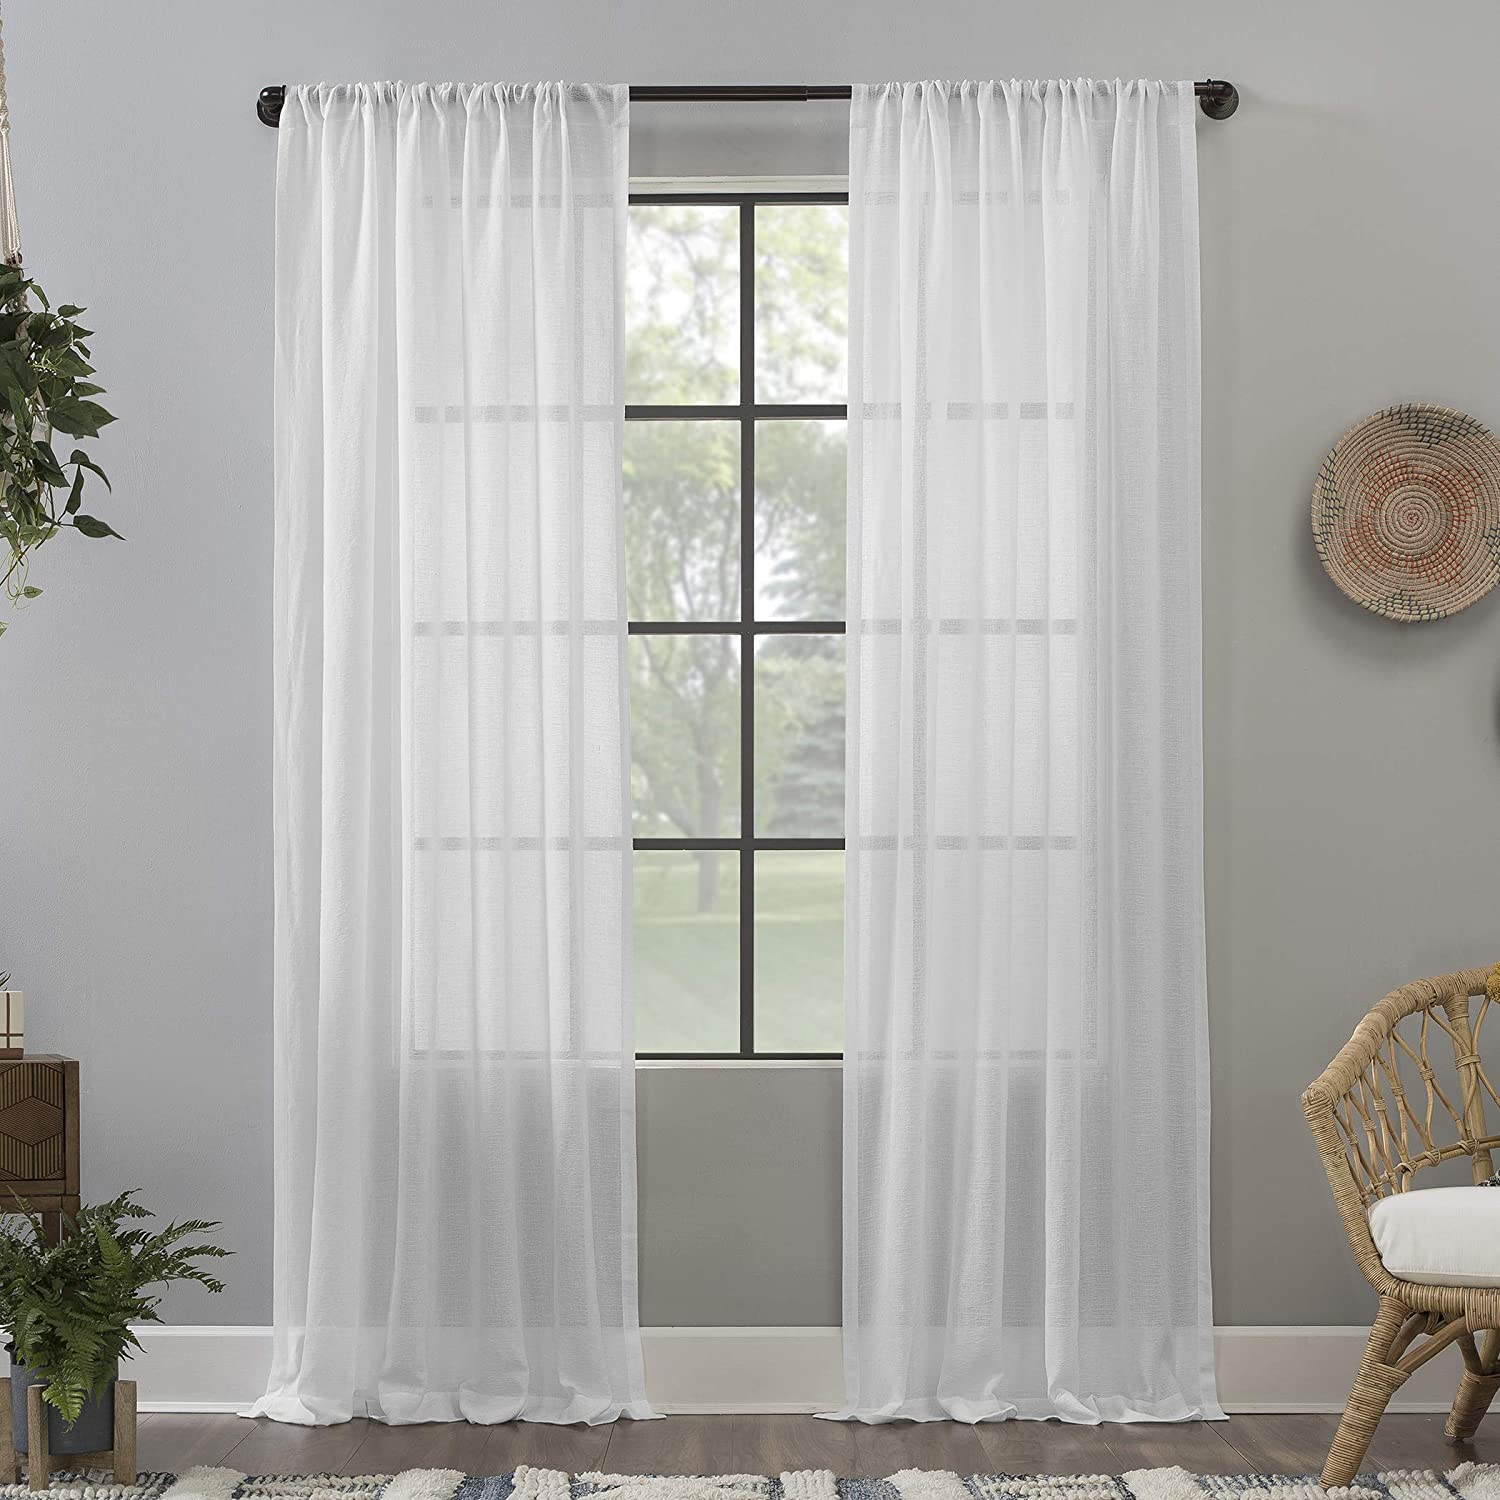 Clean Window Crushed Texture Allergy/Pet Friendly Anti-Dust Sheer Curtain Panel, 52